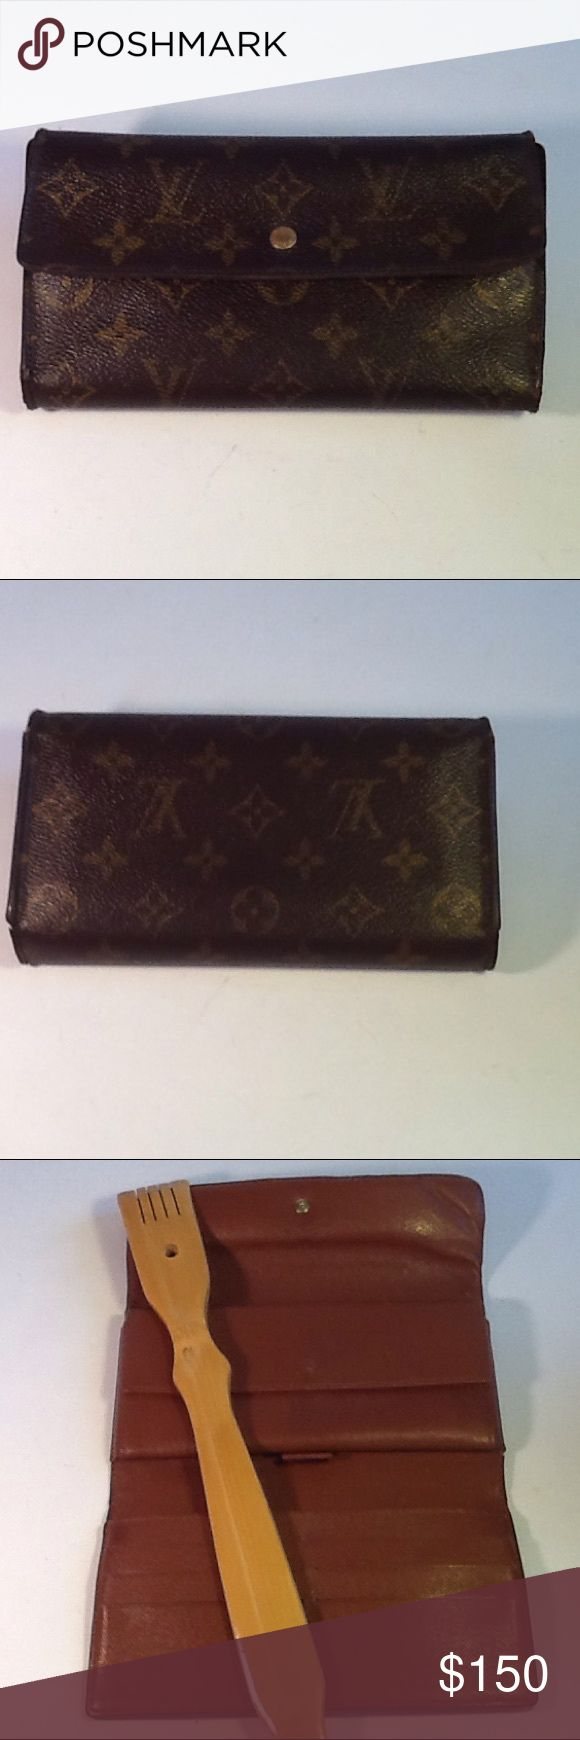 Authentic Louis Vuitton Long International Wallet. The inside leather gas some curling due to folding. The leather showed signs of used. The canvas us good. The wallet was made in France with a date code TH 0953. Louis Vuitton Accessories